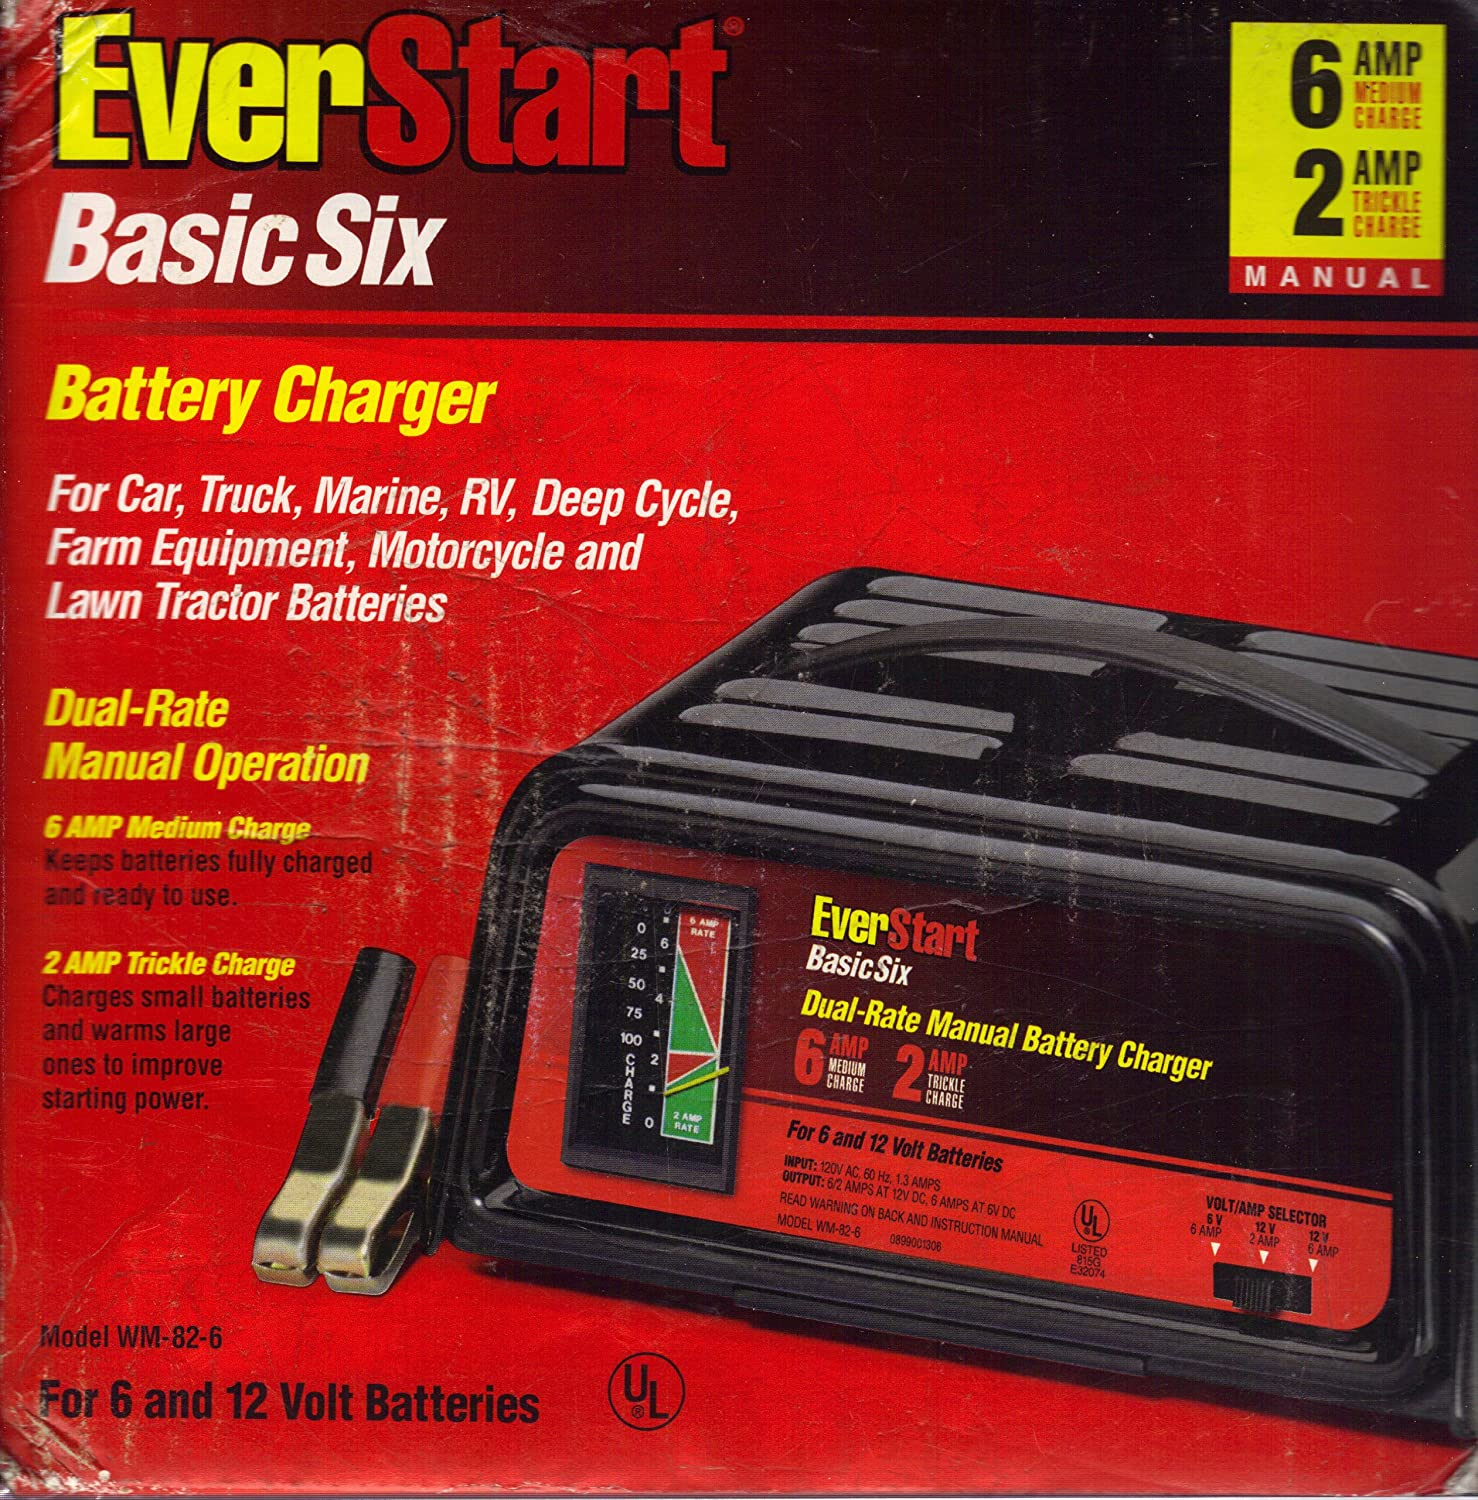 A1PRgKczoEL._SL1500_ amazon com everstart wm 82 6 basic six battery charger automotive everstart battery charger wiring diagram at reclaimingppi.co